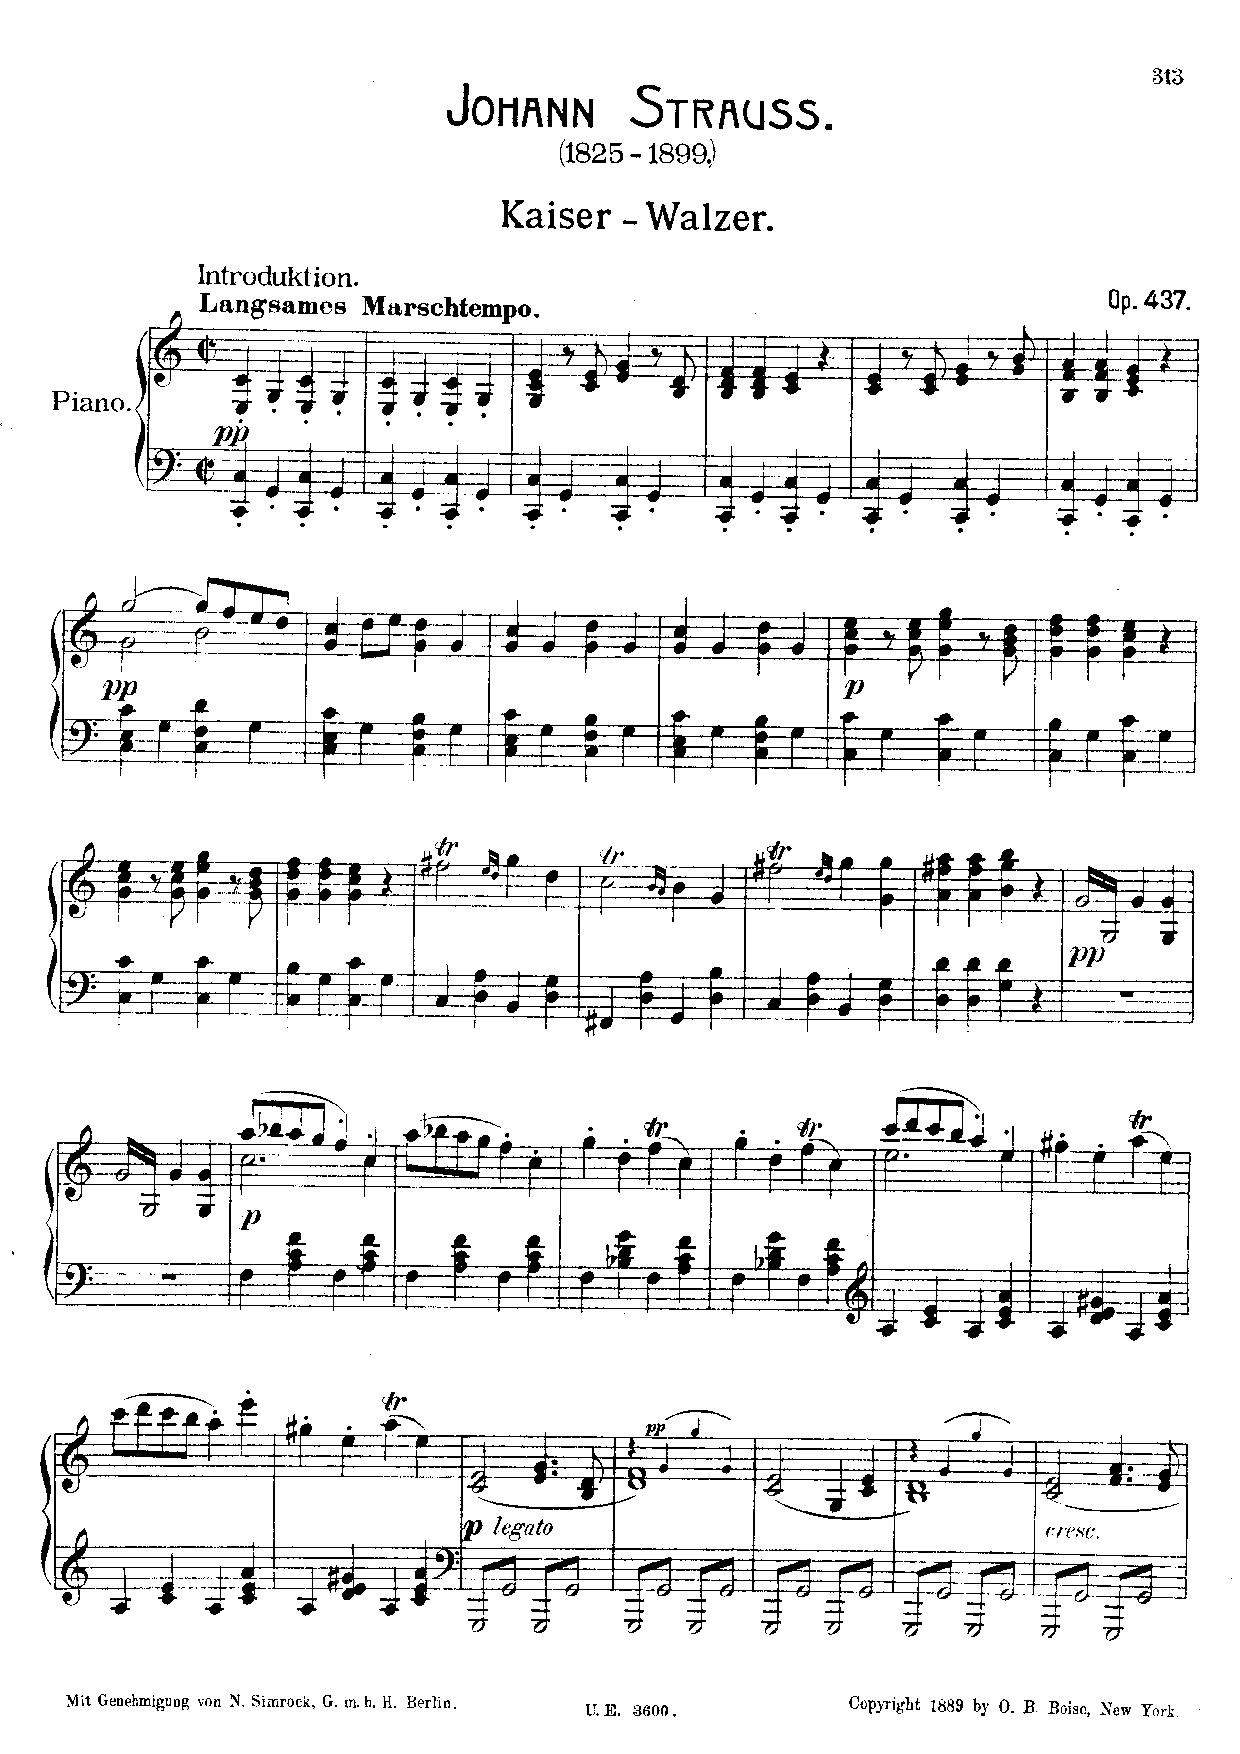 The Entertainer   Free Printable Sheet Music For Easy/level 3 Piano - Free Printable Sheet Music For The Entertainer